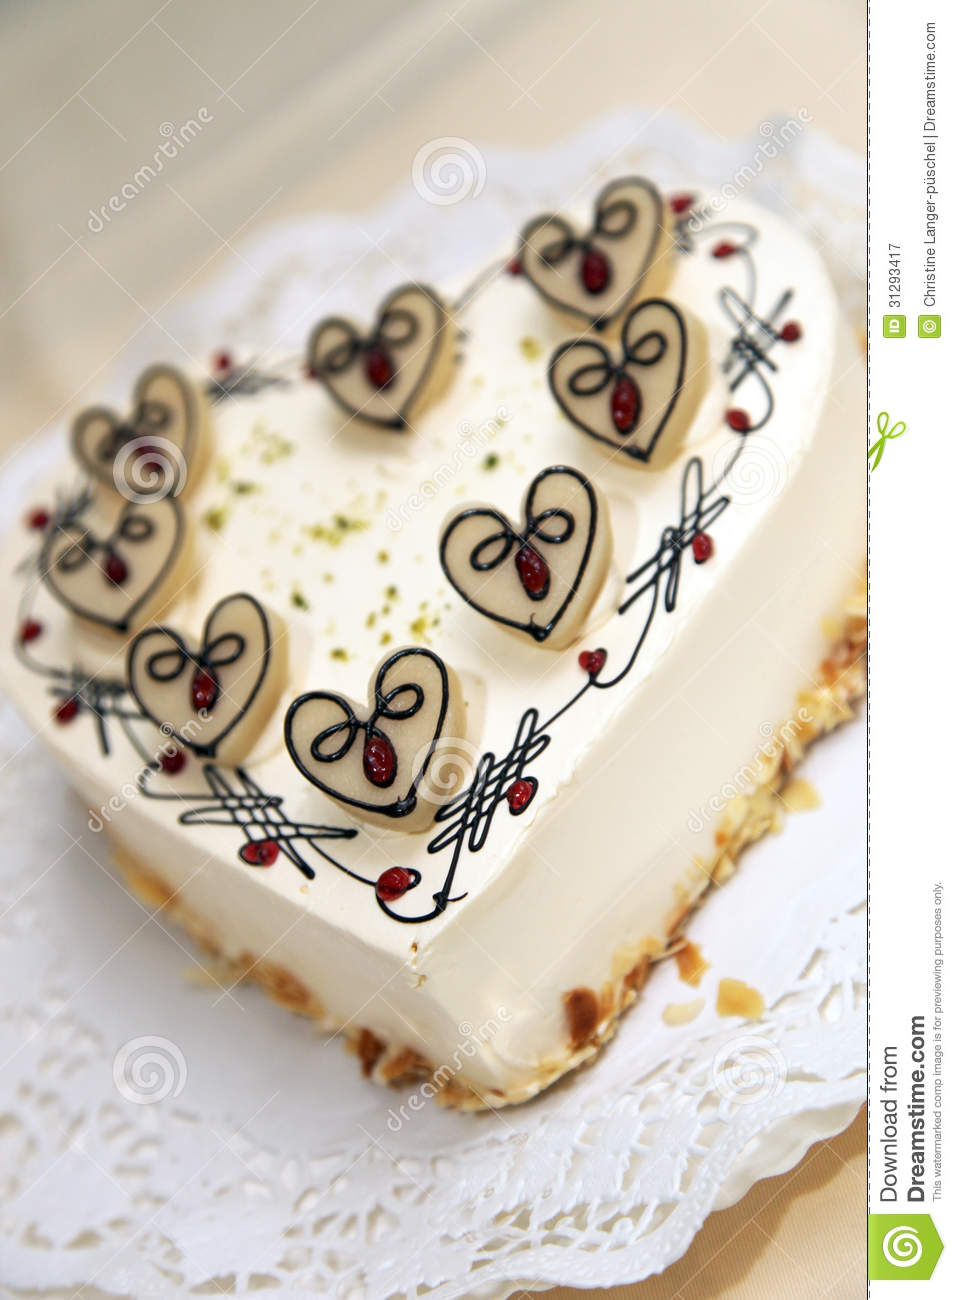 Cake Design Heart Shape : Delicious Heart Shaped Cake Royalty Free Stock Photography ...